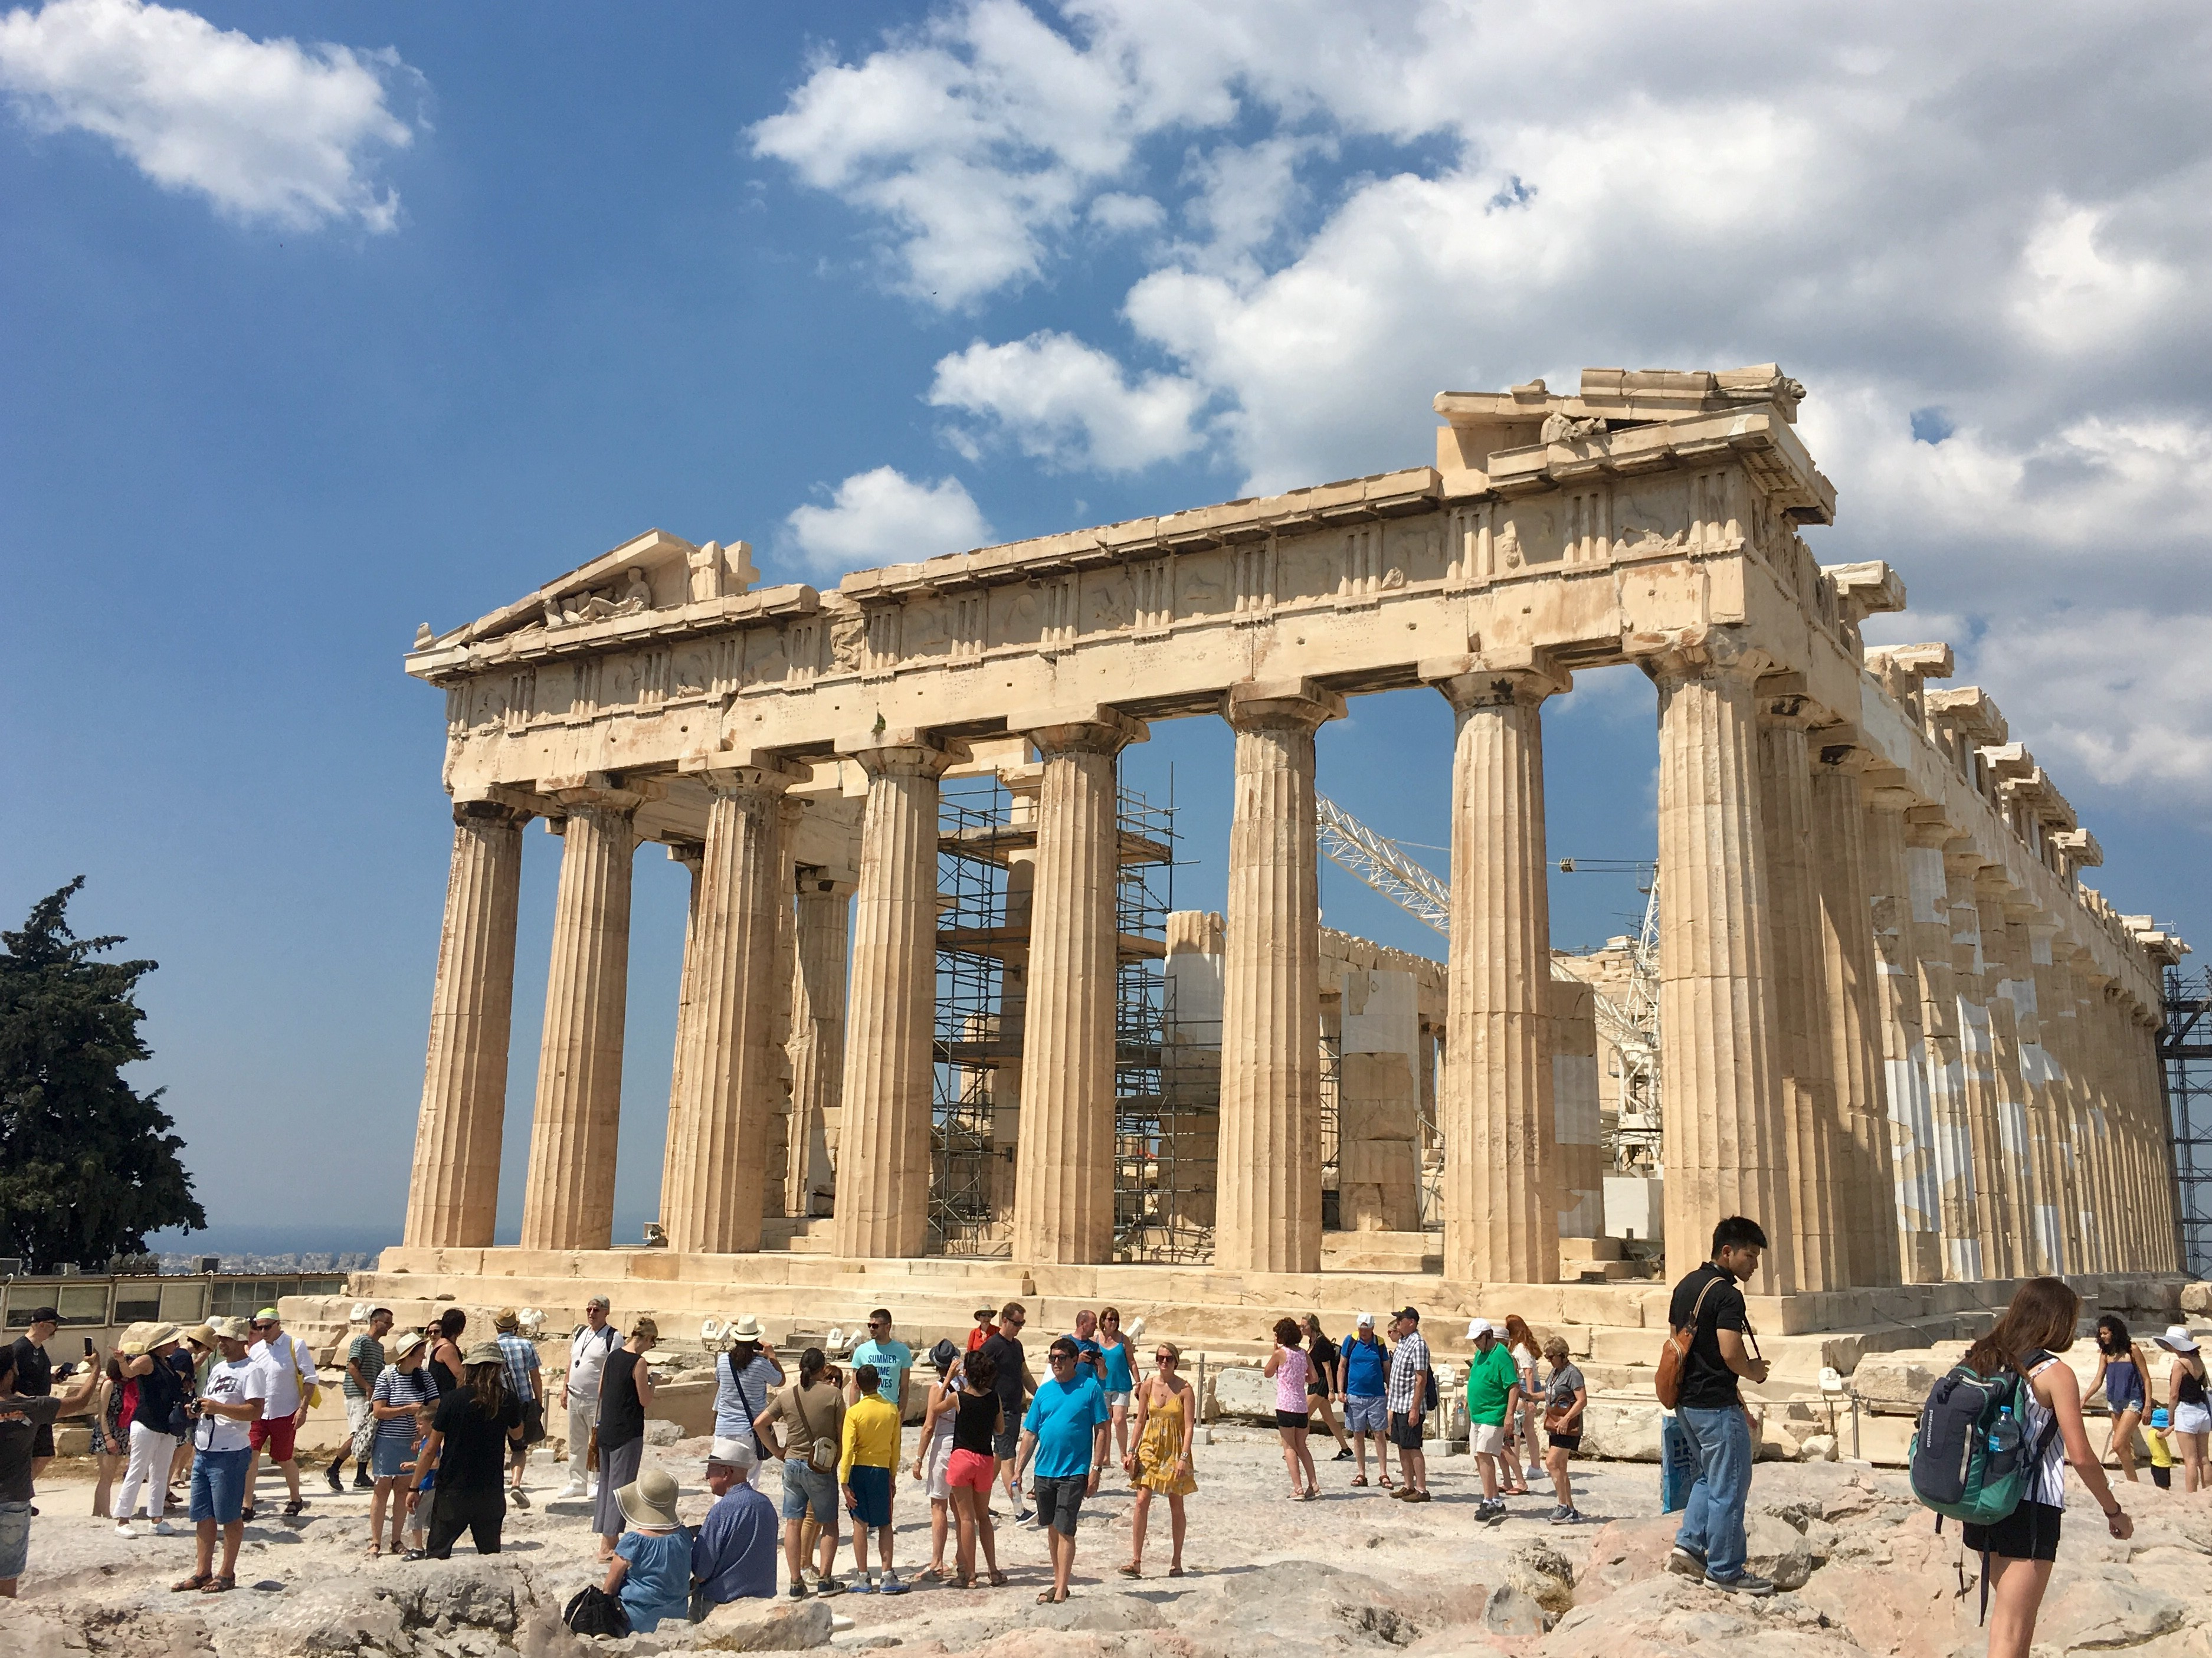 The Parthenon in Athens, surrounded by tourists